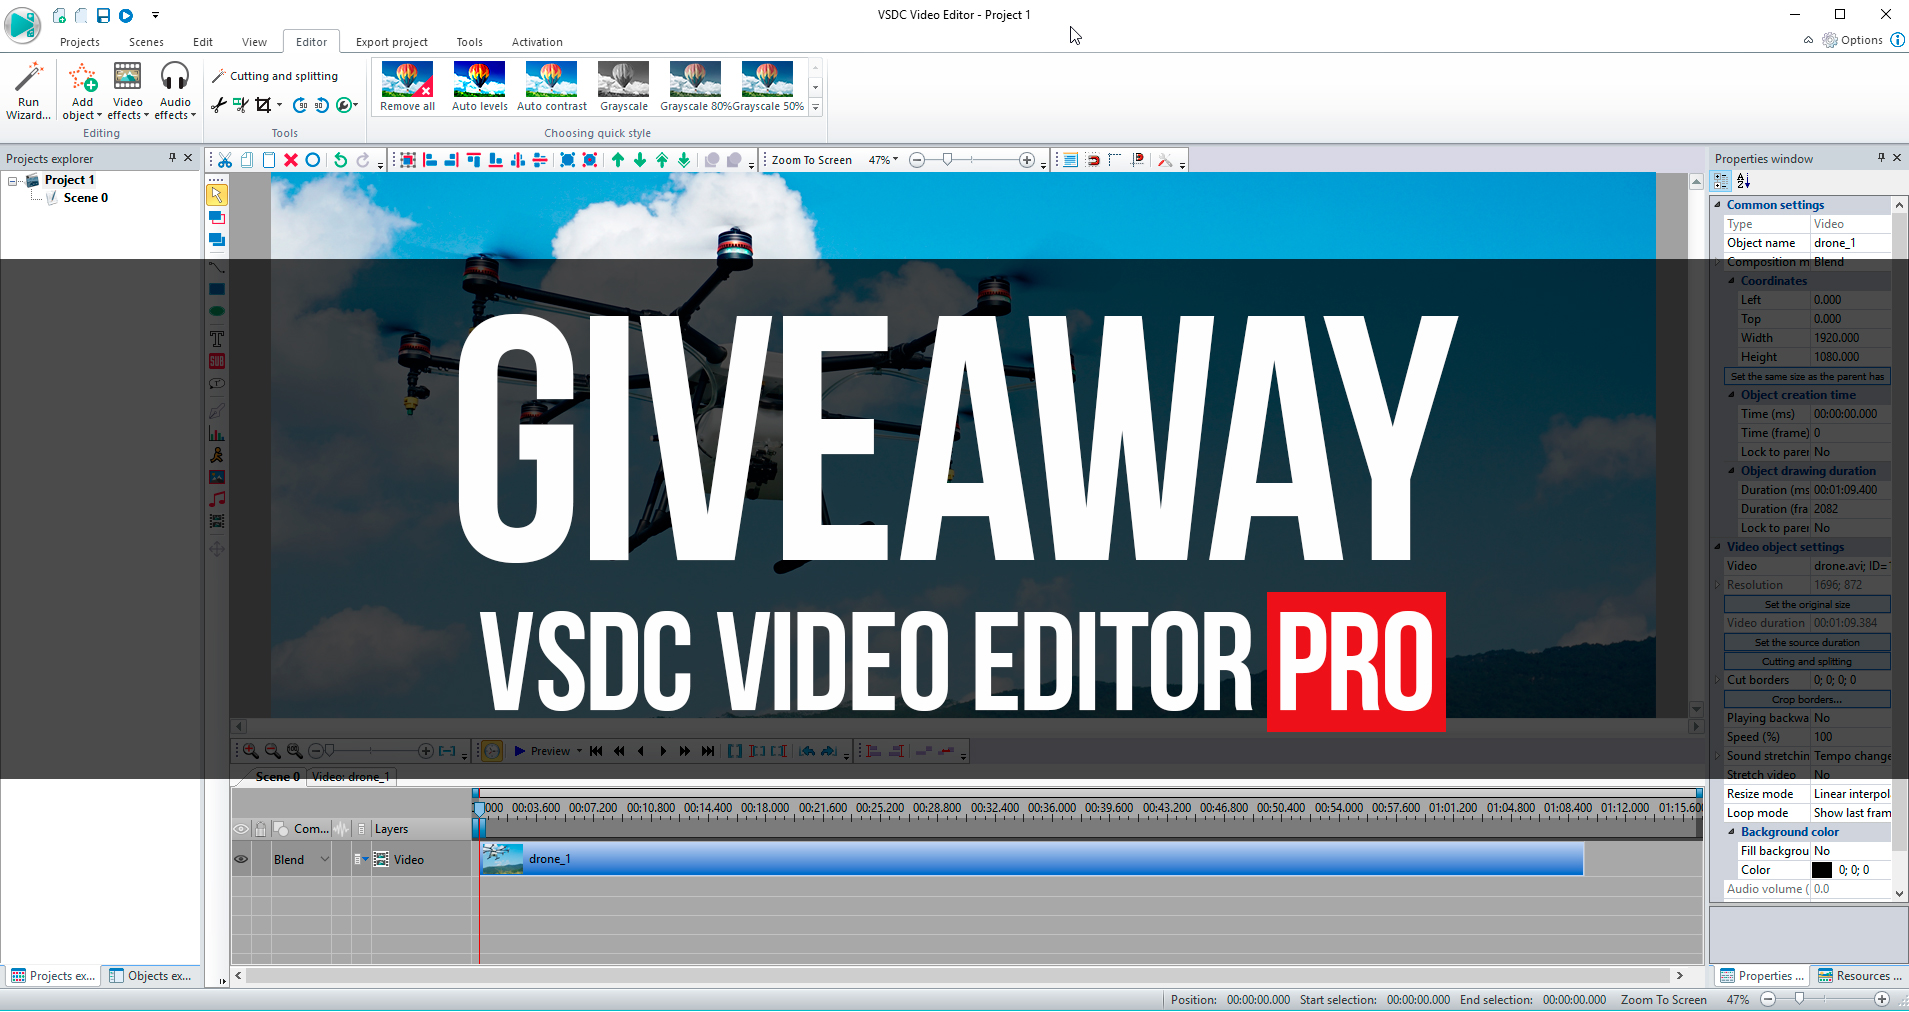 VSDC Video Editor Pro is giving away free Pro licenses to Drone Girl community